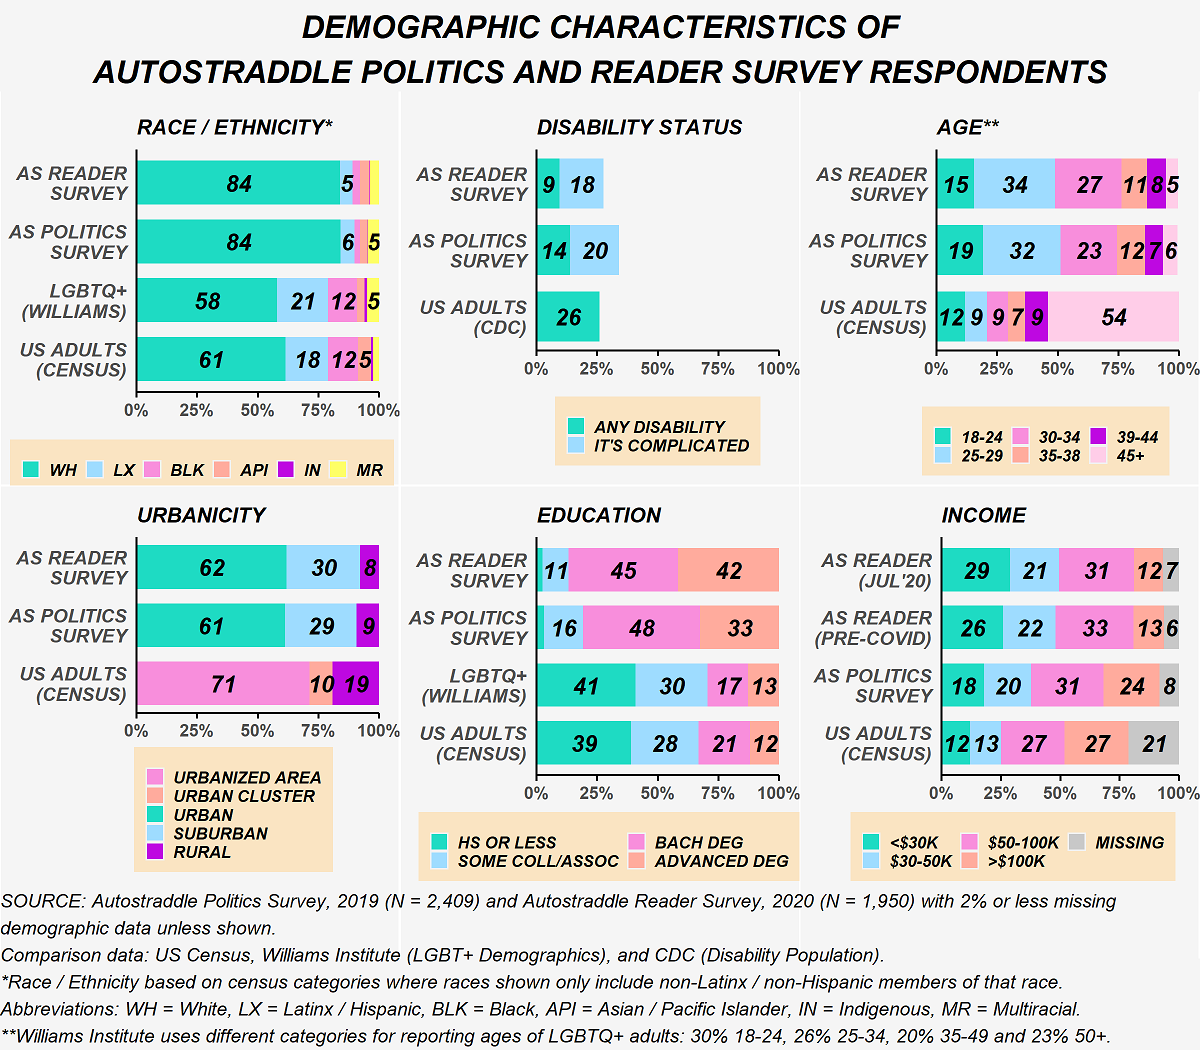 This figure shows the demographic characteristics of the samples. For race/ethnicity: Reader survey respondents are 84% non-Latinx white, 5% Latinx and less than 5% all other races; Politics Survey respondents are 84% non-Latinx white, 6% Latinx, 5% non-Latinx multiracial and less than 5% all other races; LGBTQ+ adults in the U.S. are 58% non-Latinx white, 21% Latinx, 12% non-Latinx Black, 5% non-Latinx multiracial and less than 5% all other races; U.S. Adults are 61% non-Latinx white, 18% Latinx, 12% non-Latinx Black, 5% non-Latinx Asian Pacific Islander and less than 5% all other races. For disability status: 9% of Reader survey respondents reported having a disability and 18% said the situation is complicated compared with 14% of Politics Survey Respondents with disabilities and 20% complicated. 26% of adults in the U.S. have disabilities. For age: Reader survey respondents are 15% ages 18-24, 34% ages 25-29, 27% ages 30-34, 11% ages 35-38, 8% ages 39-44 and 5% ages 45 and older. Politics survey respondents are 19% ages 18-24, 32% ages 25-29, 23% ages 30-34, 12% ages 35-38, 7% ages 39-44 and 6% ages 45 and older. U.S. adults are 12% ages 18-24, 9% ages 25-29, 9% ages 30-34, 7% ages 35-38, 9% ages 39-44 and 54% ages 45 and older. LGBT+ adults are 30% ages 18-24, 26% ages 25-34, 20% ages 35-49 and 23% ages 50and older. In terms of urbanicity of where people live: 62% of Reader Survey respondents live in urban areas, 30% suburban and 8% rural areas. 61% of politics survey respondents live in urban areas, 29% suburban, and 9% rural areas. 71% of U.S. adults live in urbanized areas, 10% live in urban clusters and 19% live in rural areas. In terms of education: less than 5% of Reader Survey respondents have a high school degree or less, 11% have some college or an associate's, 45% have a bachelor's degree and 42% have an advanced degree. On the Politics survey: less than 5% have high school degree or less, 16% have some college or an associate's, 48% have a bachelor's 